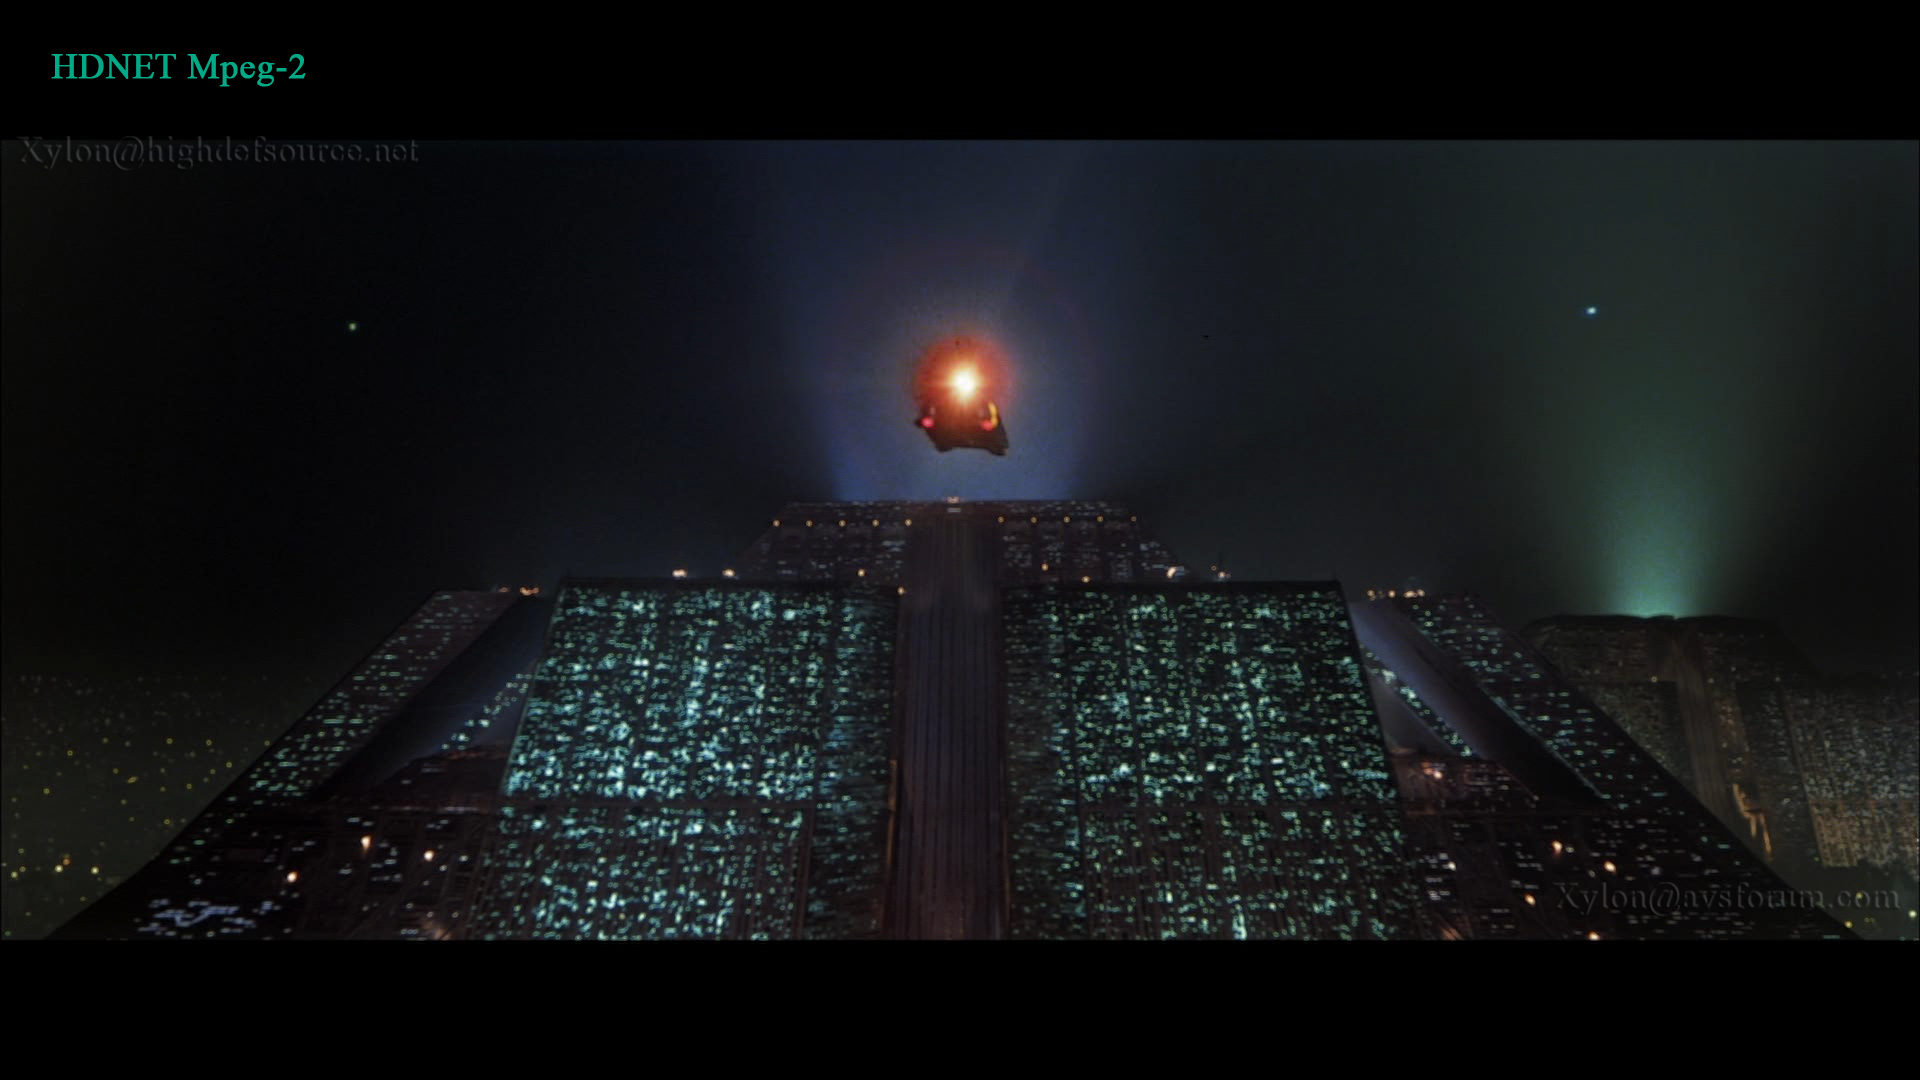 Blade Runner Wallpaper 1920x1080 Blade Runner Science Fiction 1920x1080